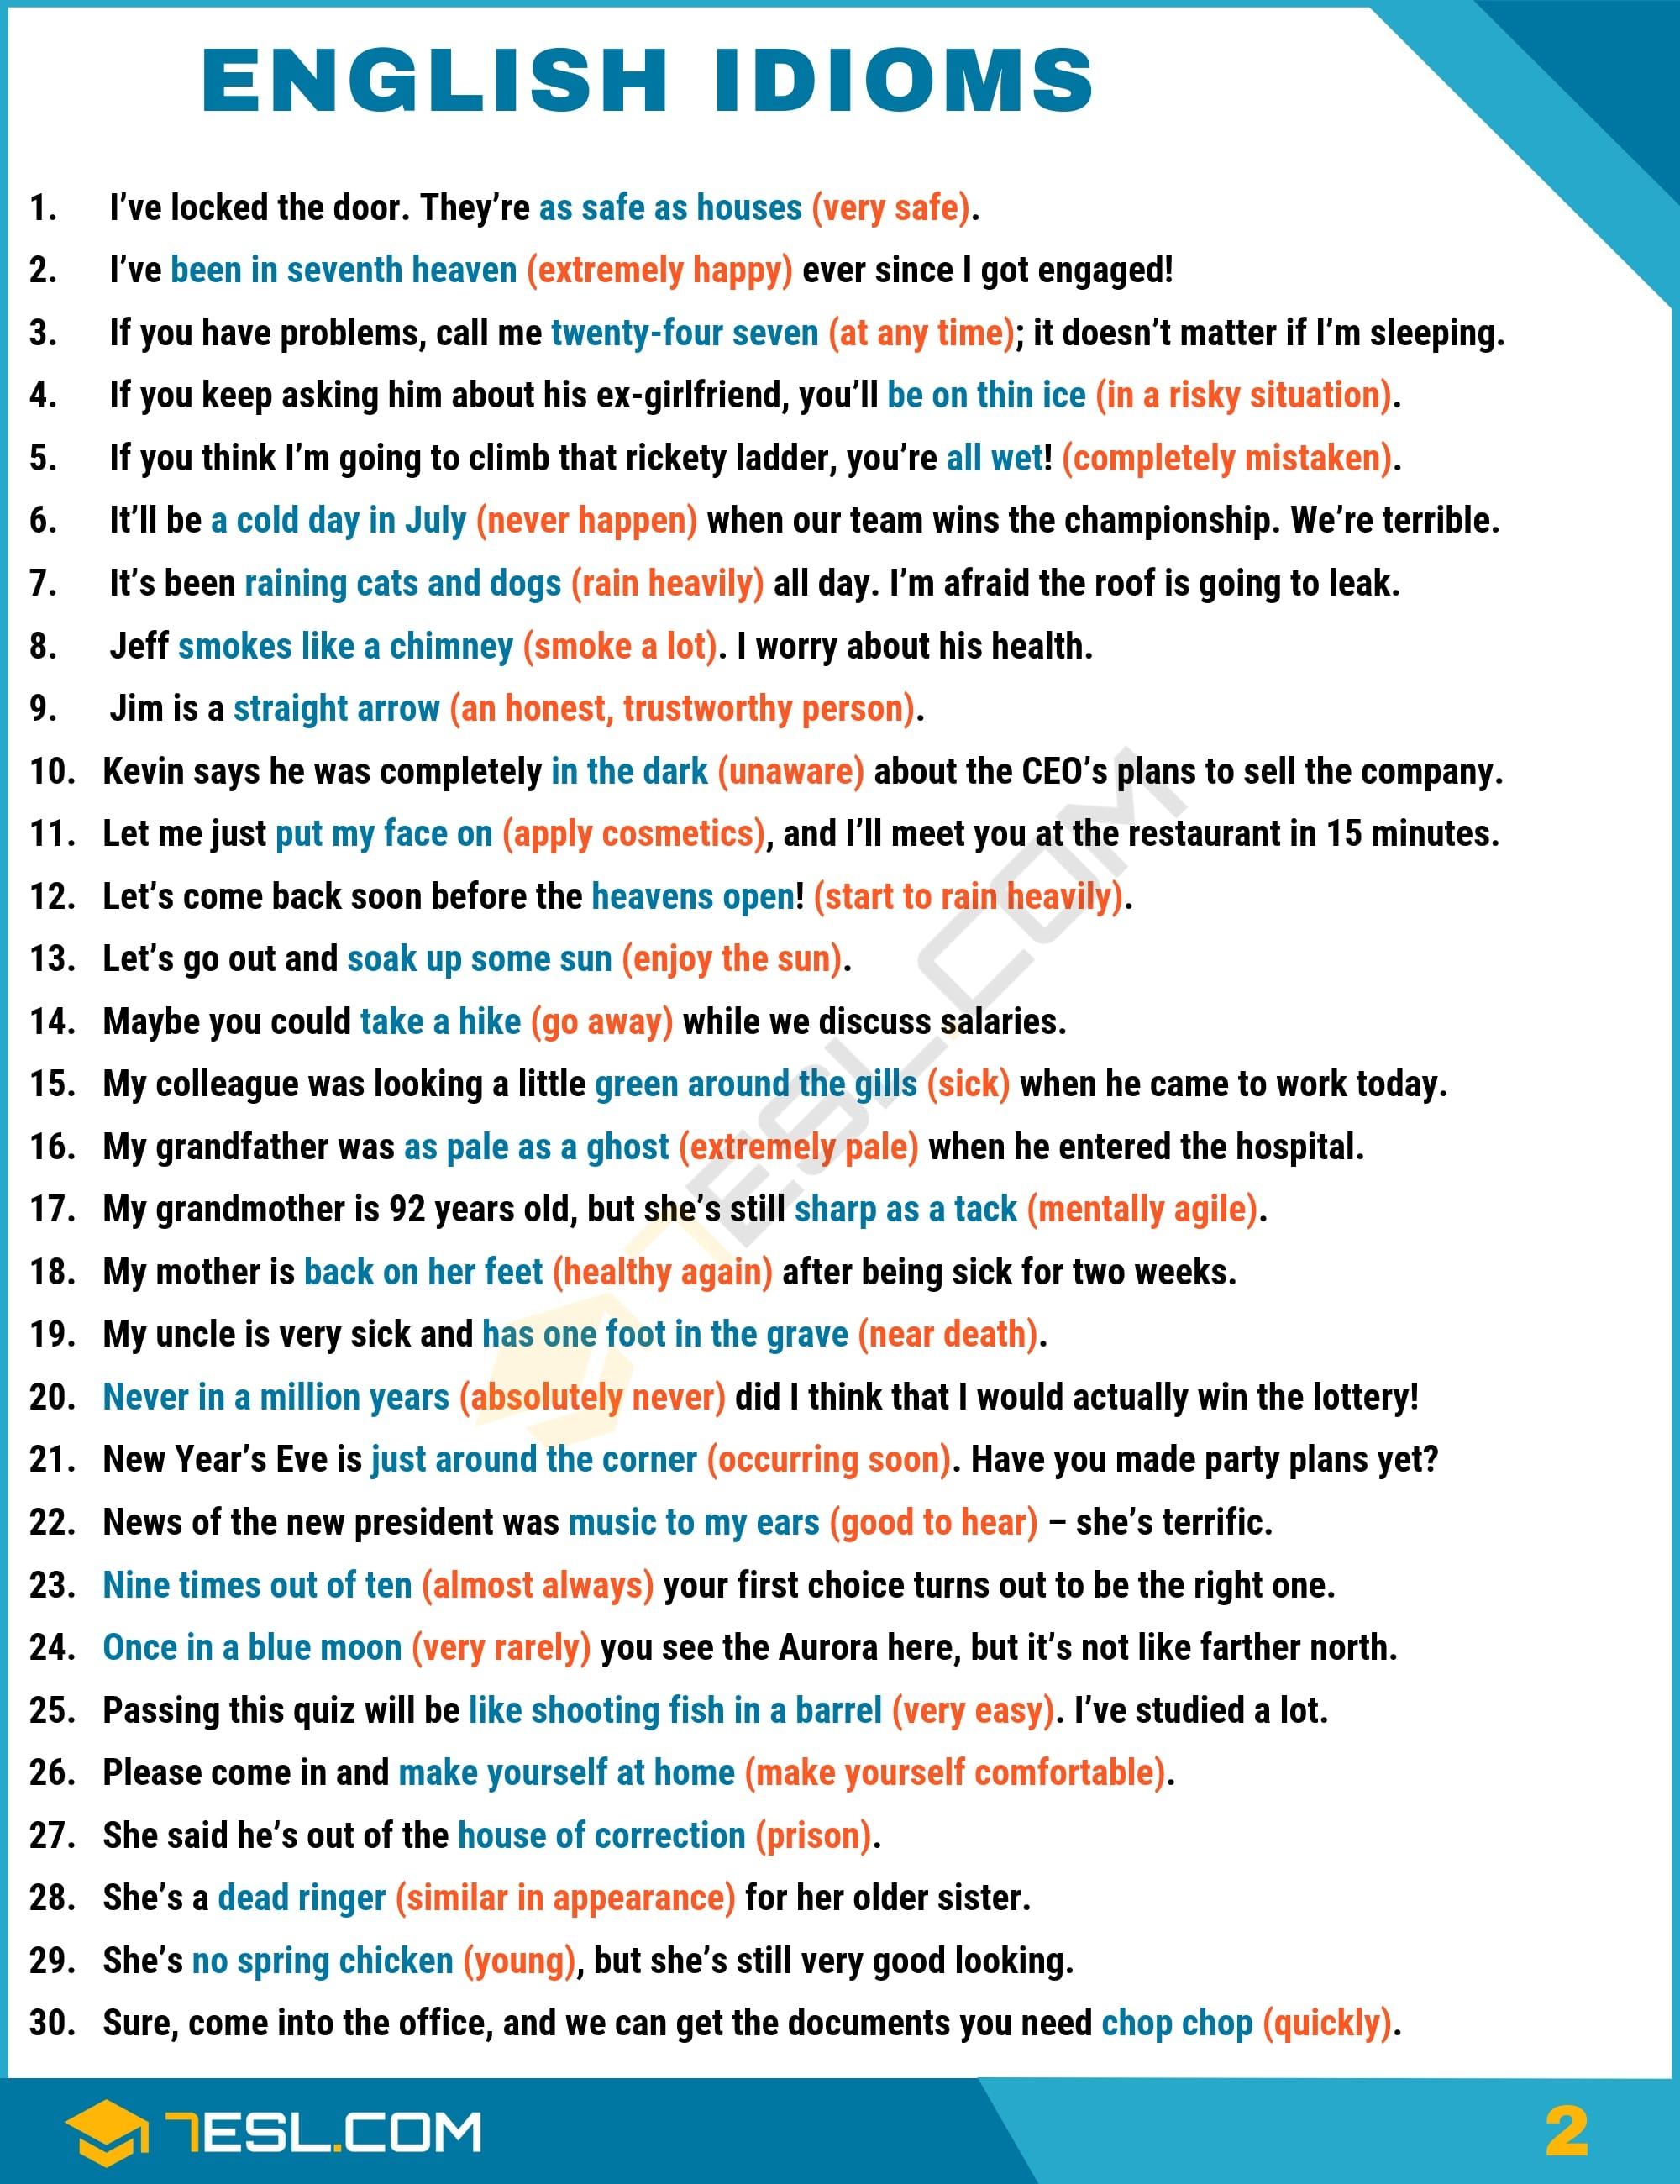 English Idioms Examples with Idiom Meaning | Image 2